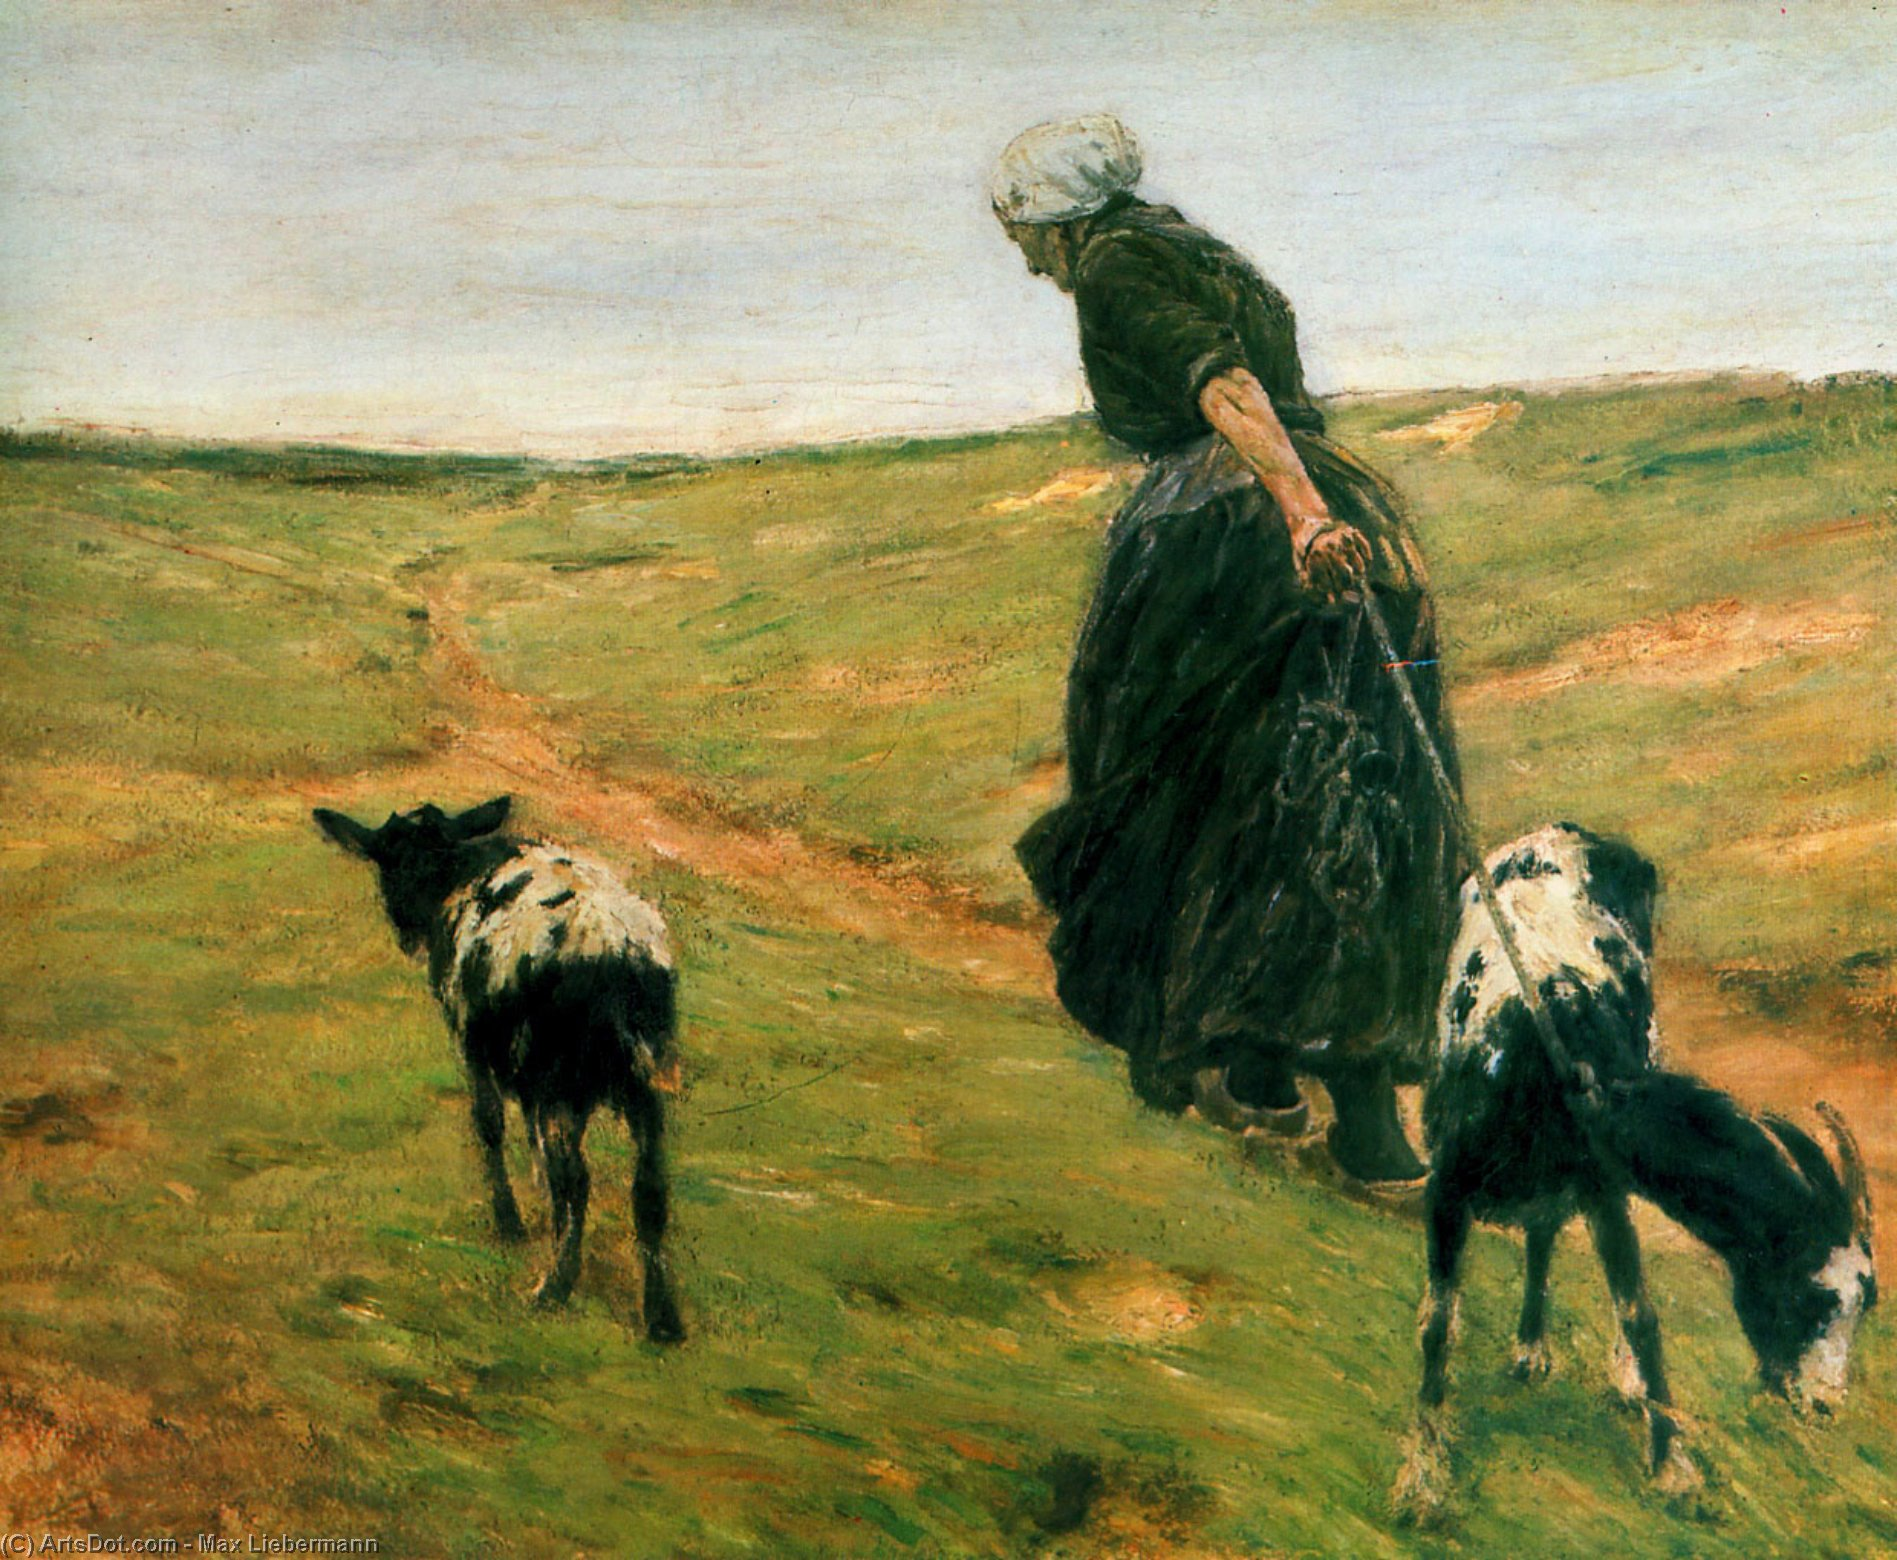 Wikioo.org - The Encyclopedia of Fine Arts - Painting, Artwork by Max Liebermann - Woman with goats